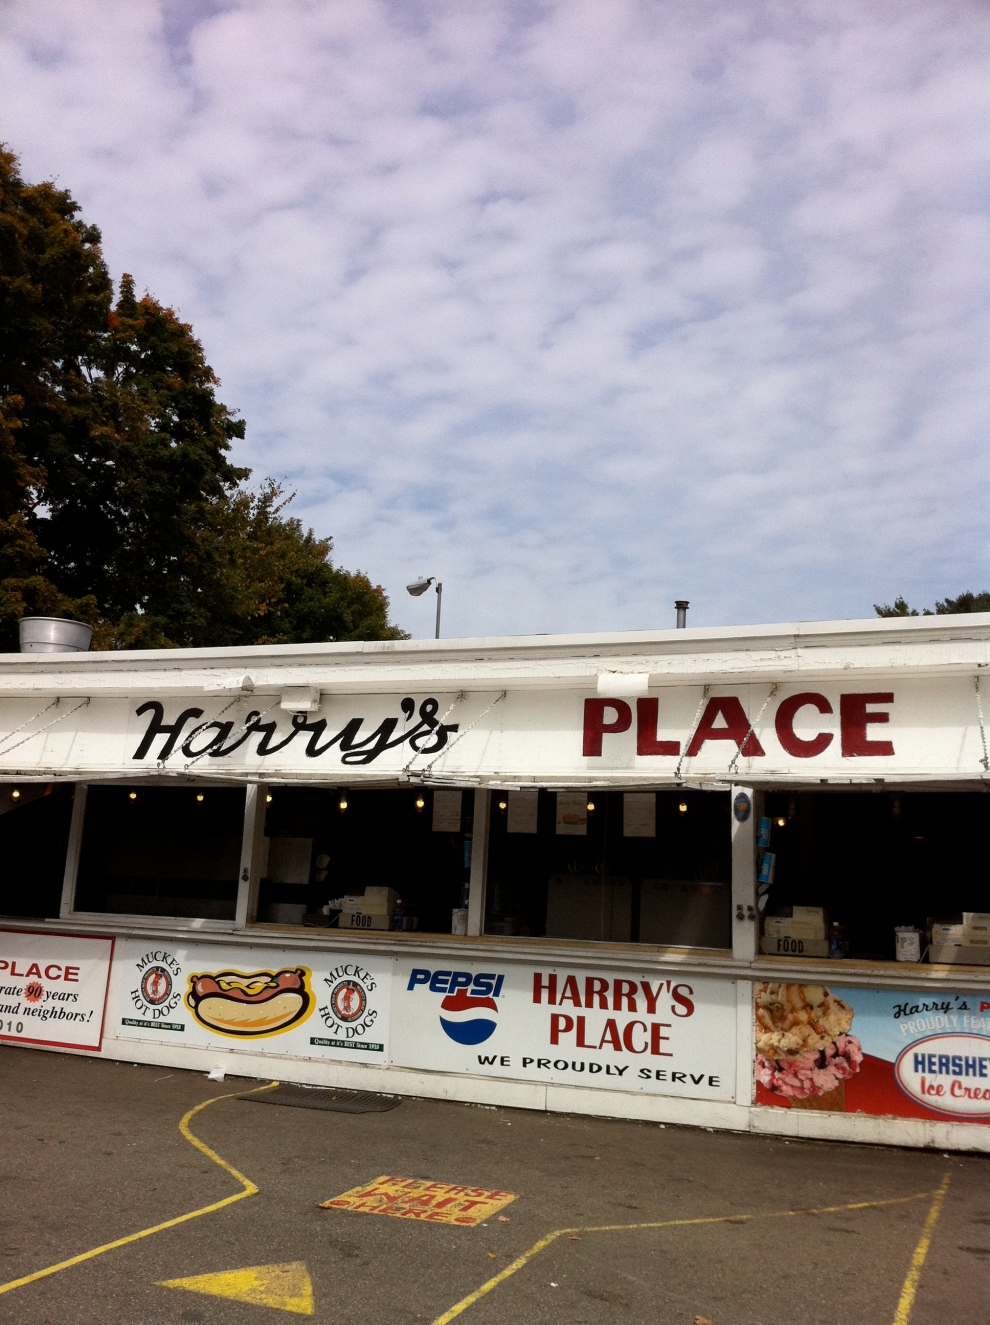 Harry's Place in Colchester, CT